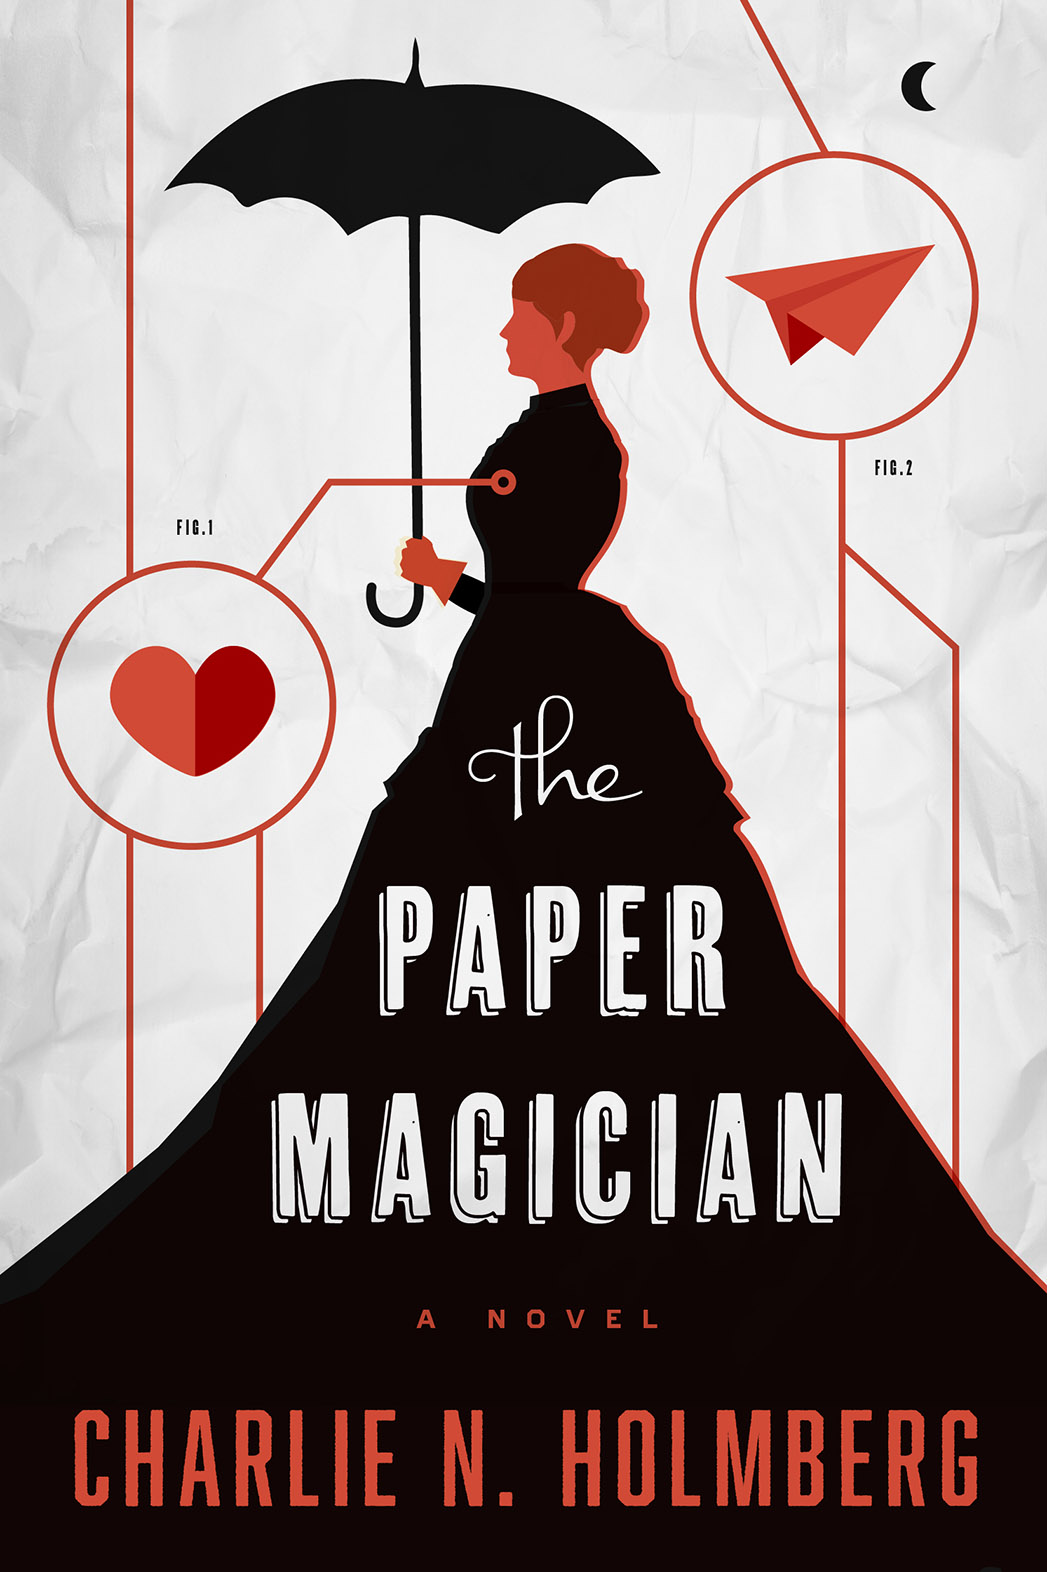 the_paper_magician_cover.jpg